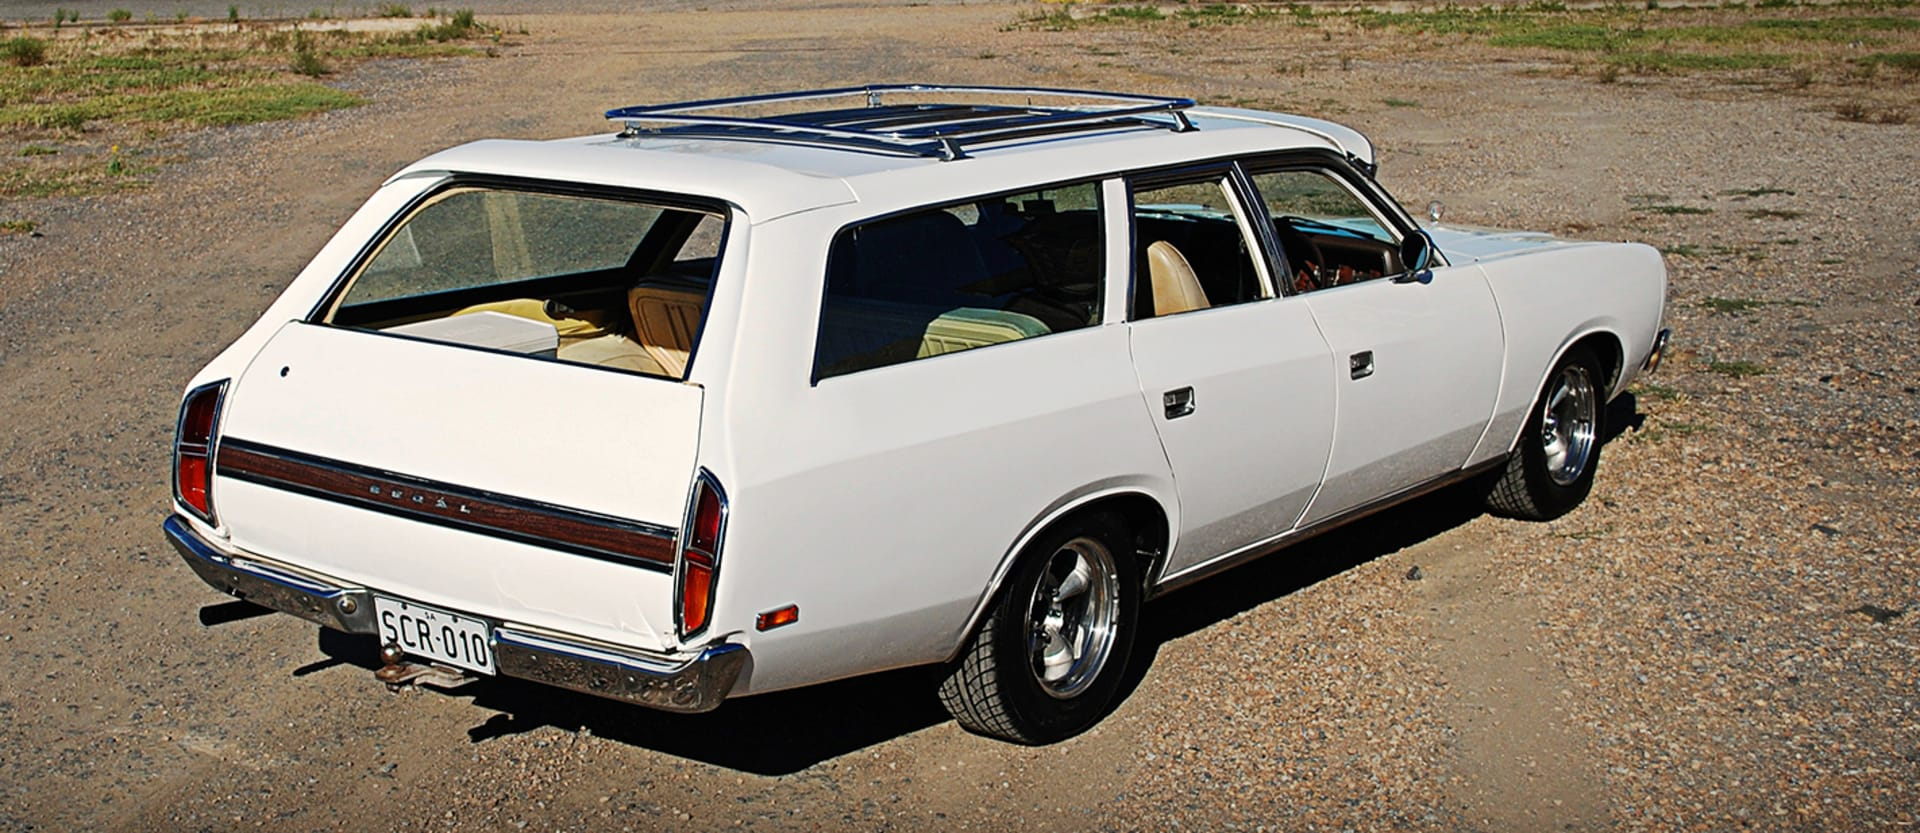 Chrysler Valiant wagon